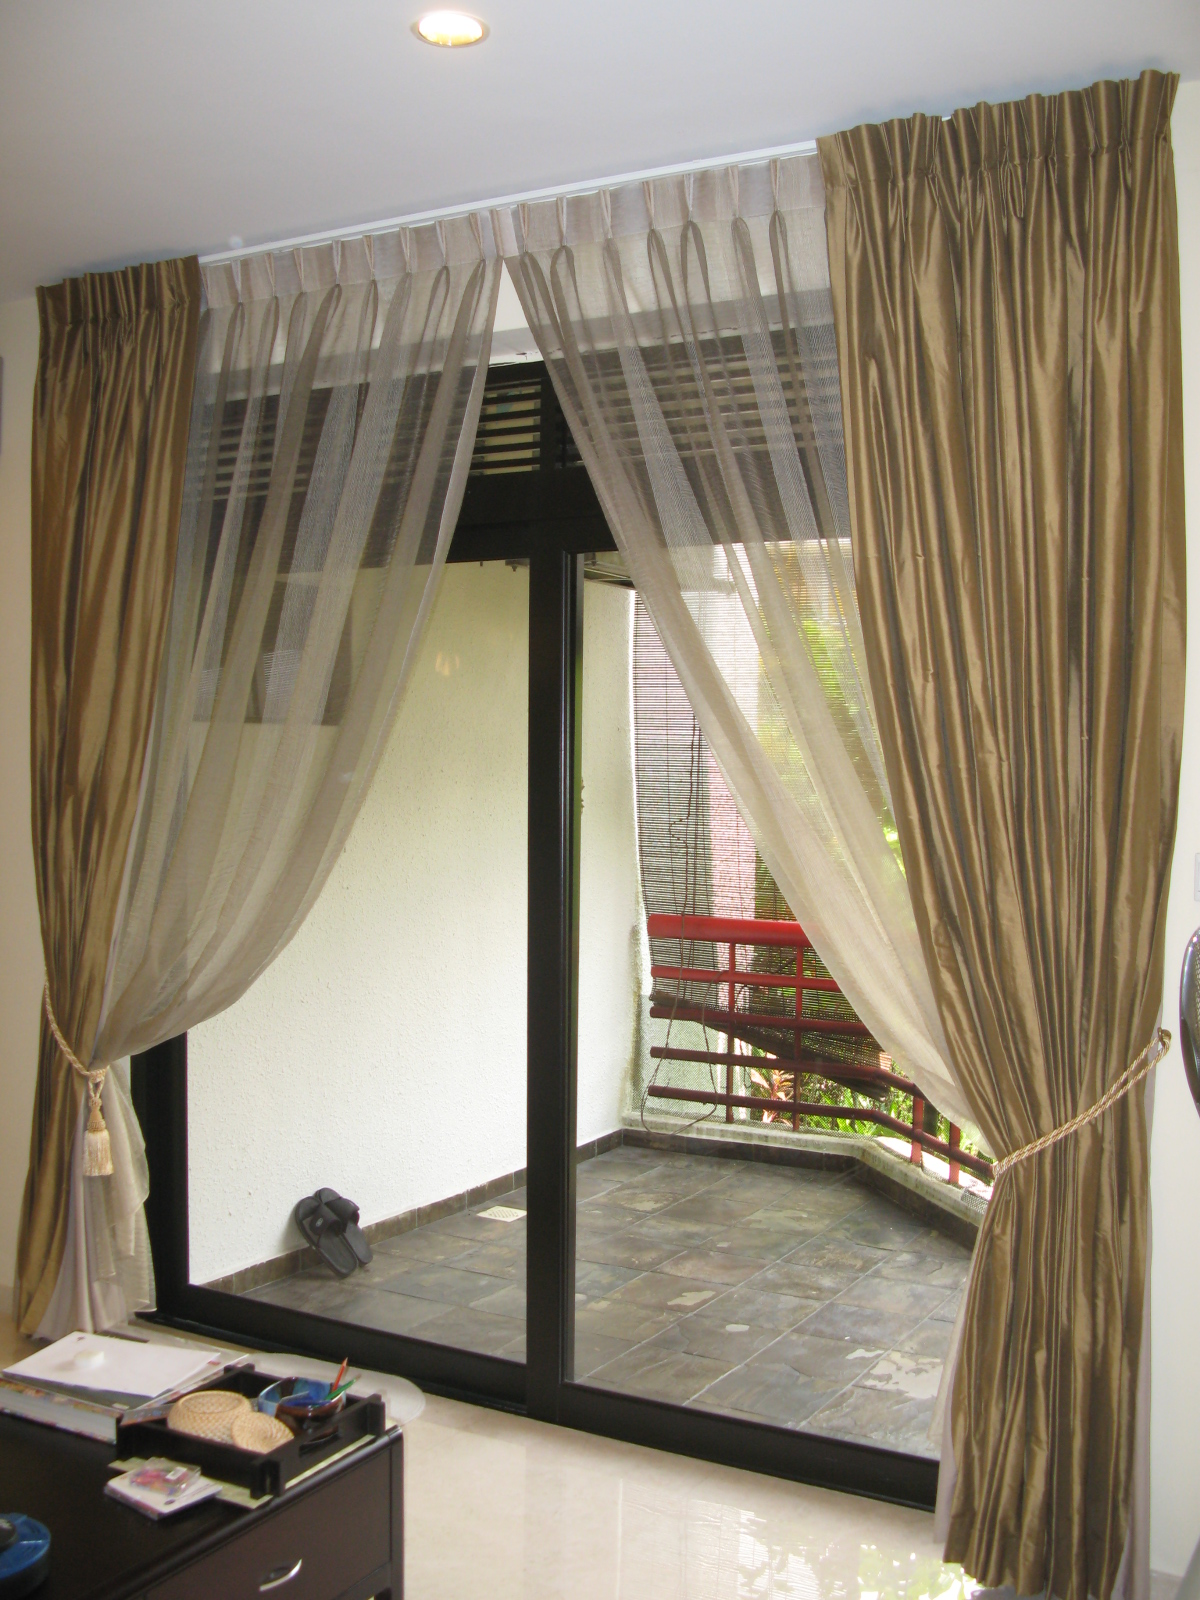 : Curtains For Patio Door Ideas And Design Heading To Patio Space With Modern Look Interior Living Room Design